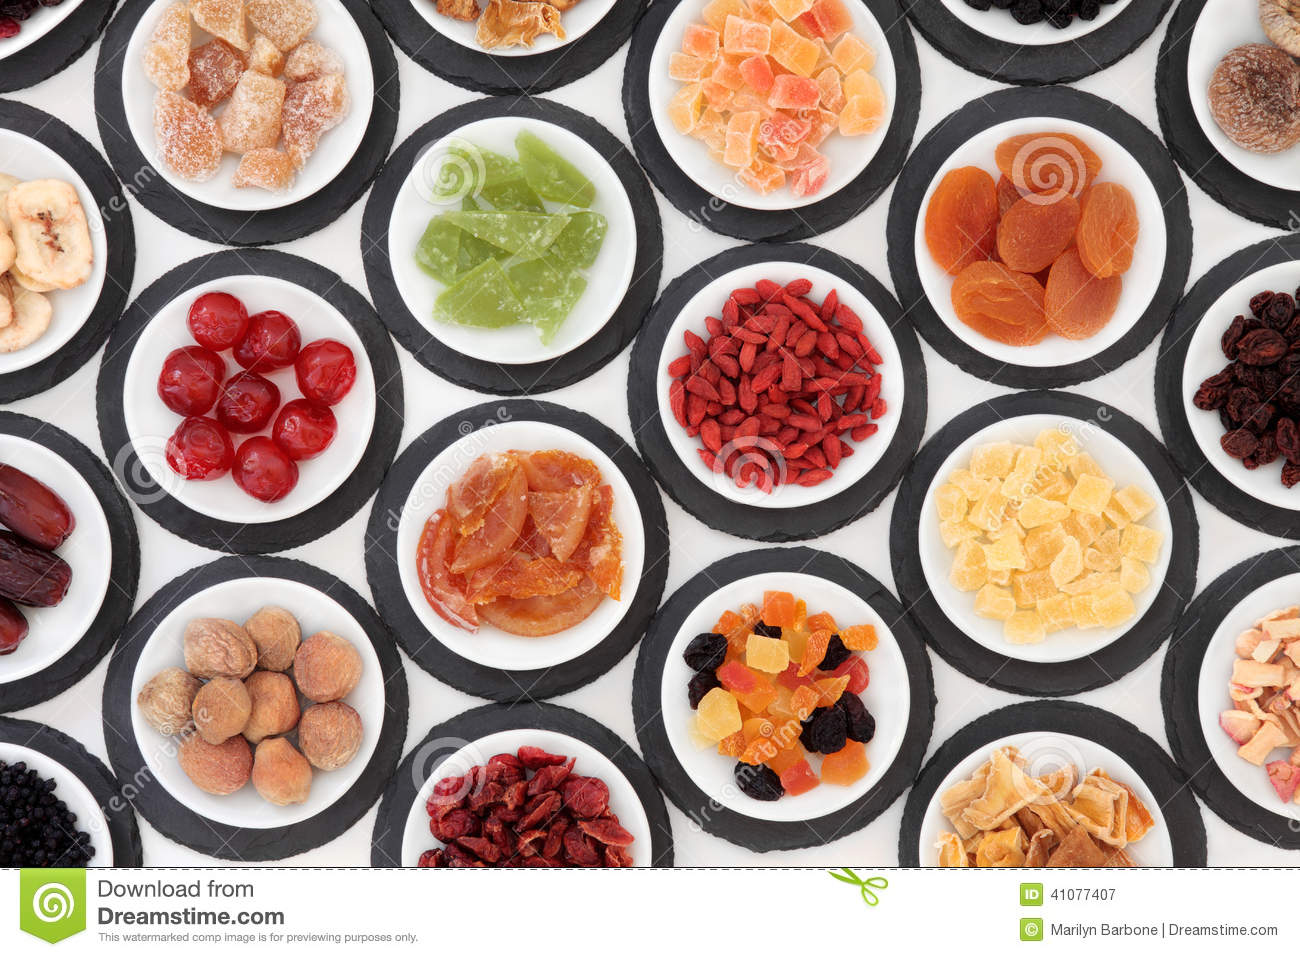 halos fruit is dehydrated fruit healthy